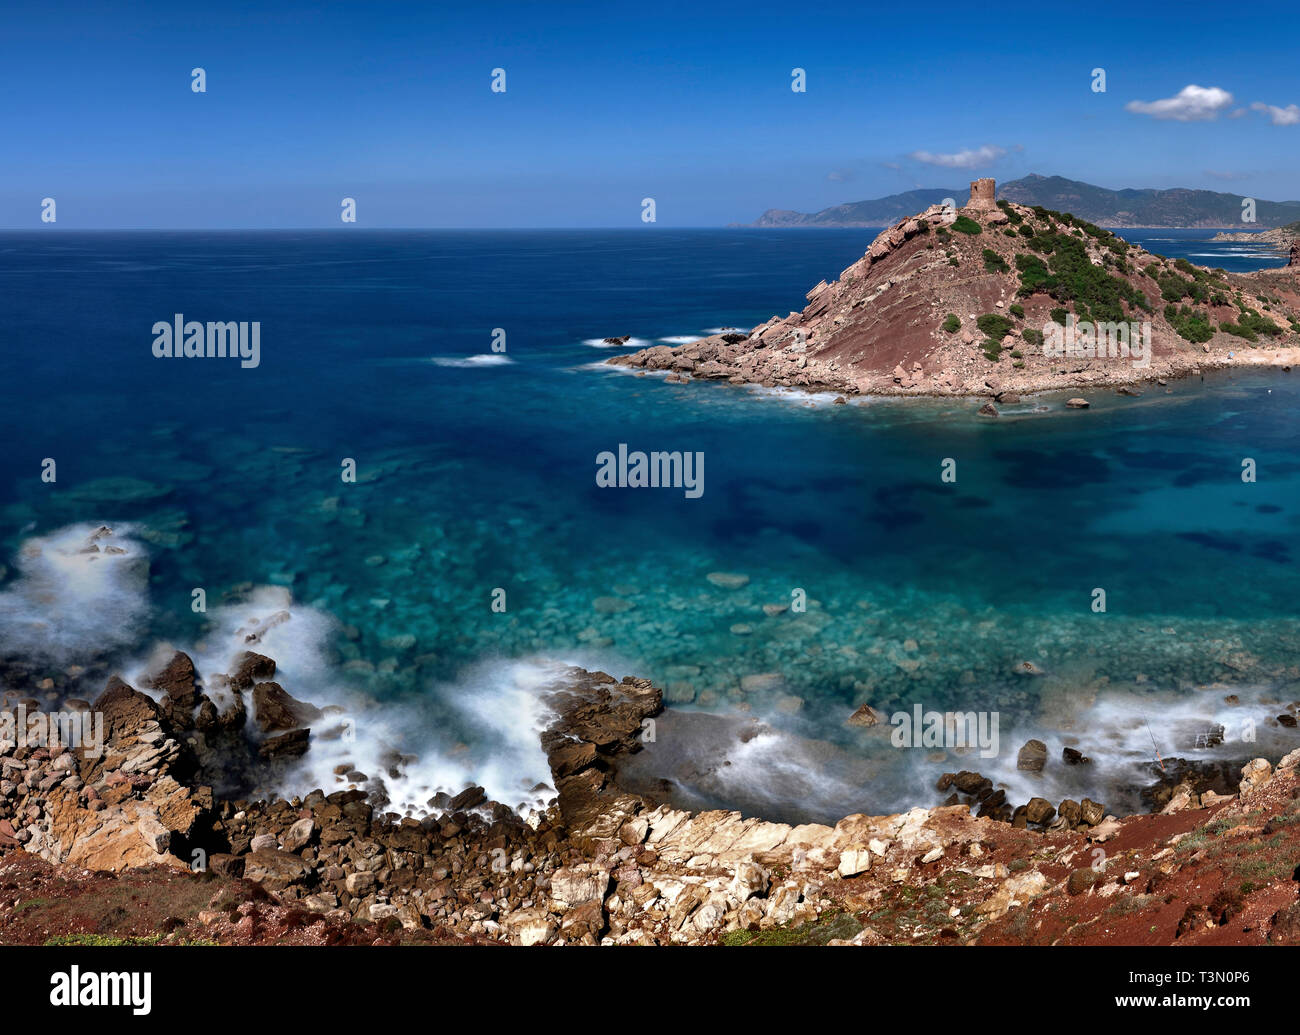 The medieval watch tower of Porticciolo, a small hamlet along the western coast of Sardinia, not far from Capo Caccia and Alghero - Stock Image